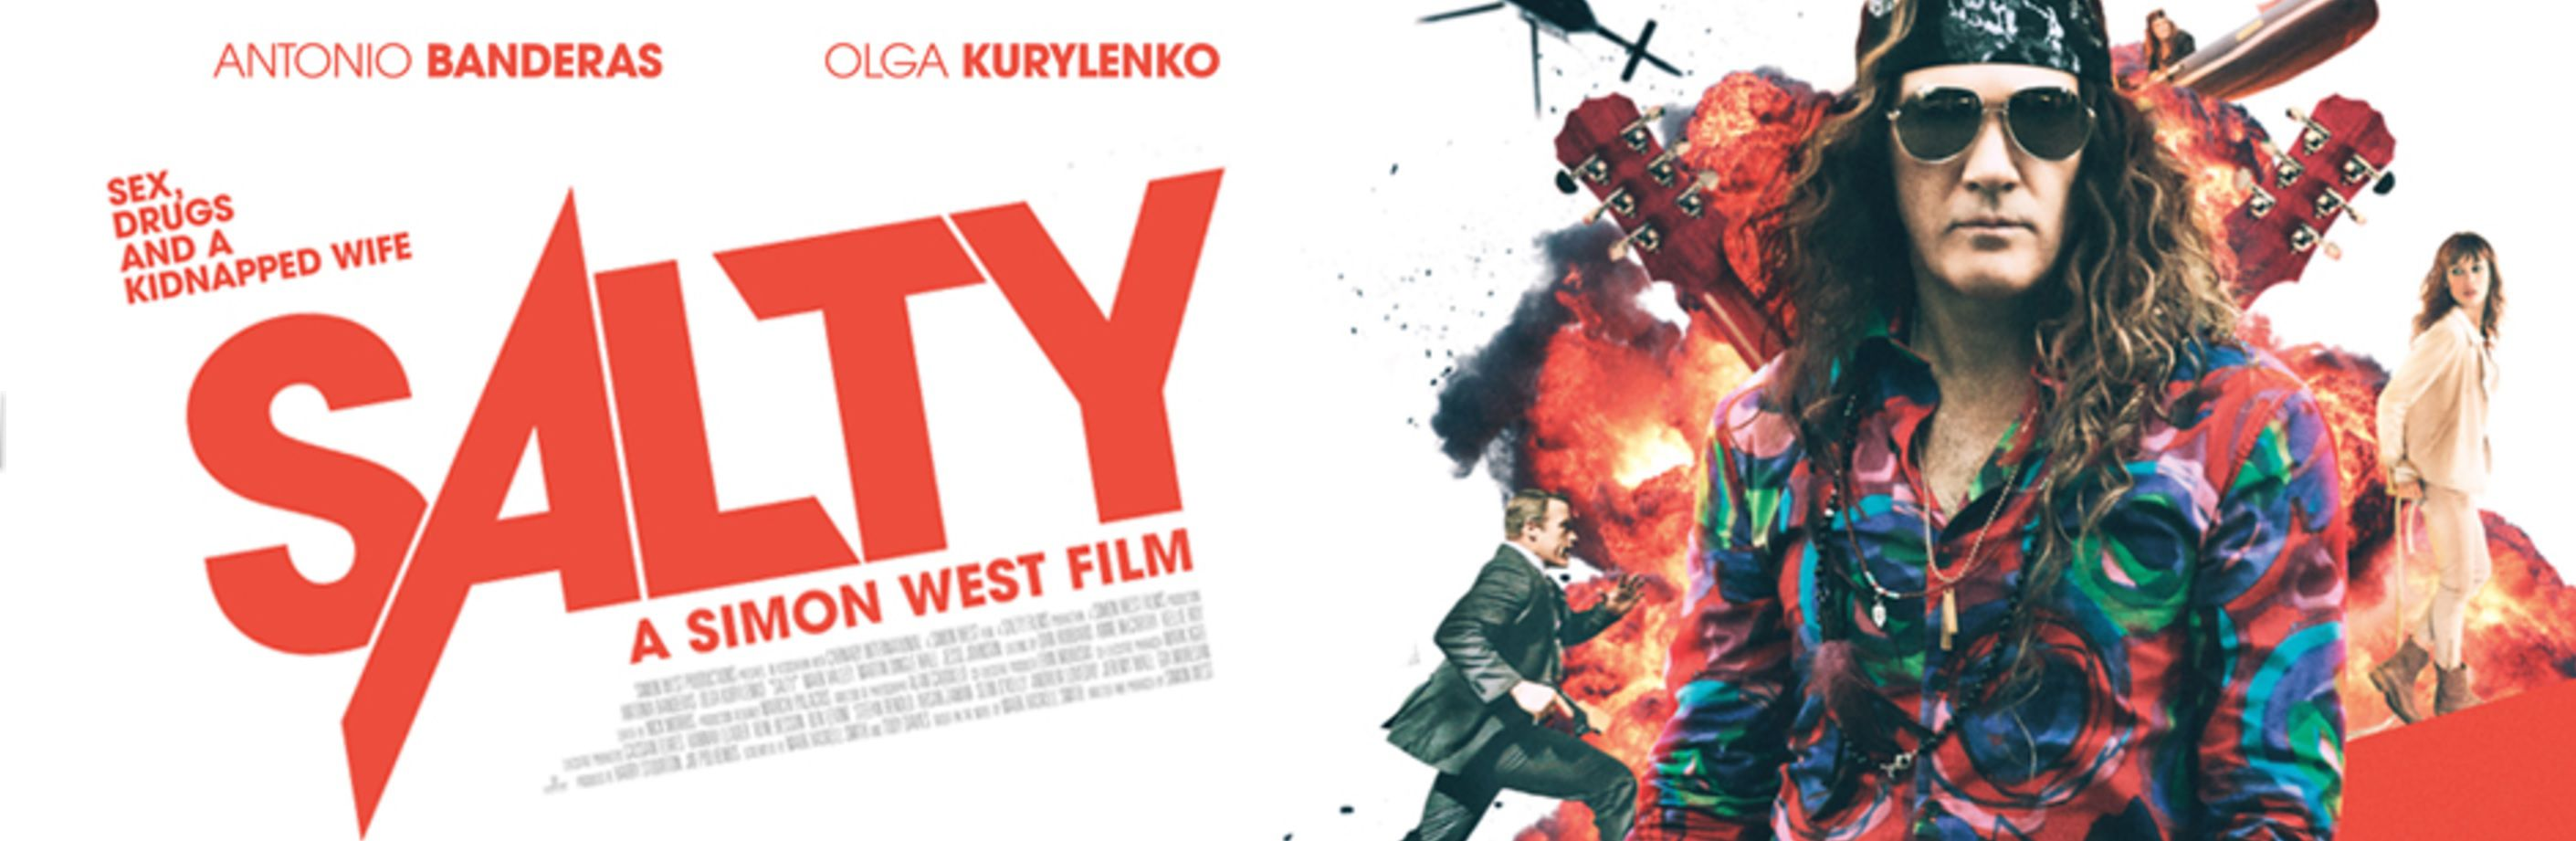 Gun Shy - Antonio Banderas - Olga Kurylenko - SALTY a Simon West film - sex, drugs and a kidnapped wife